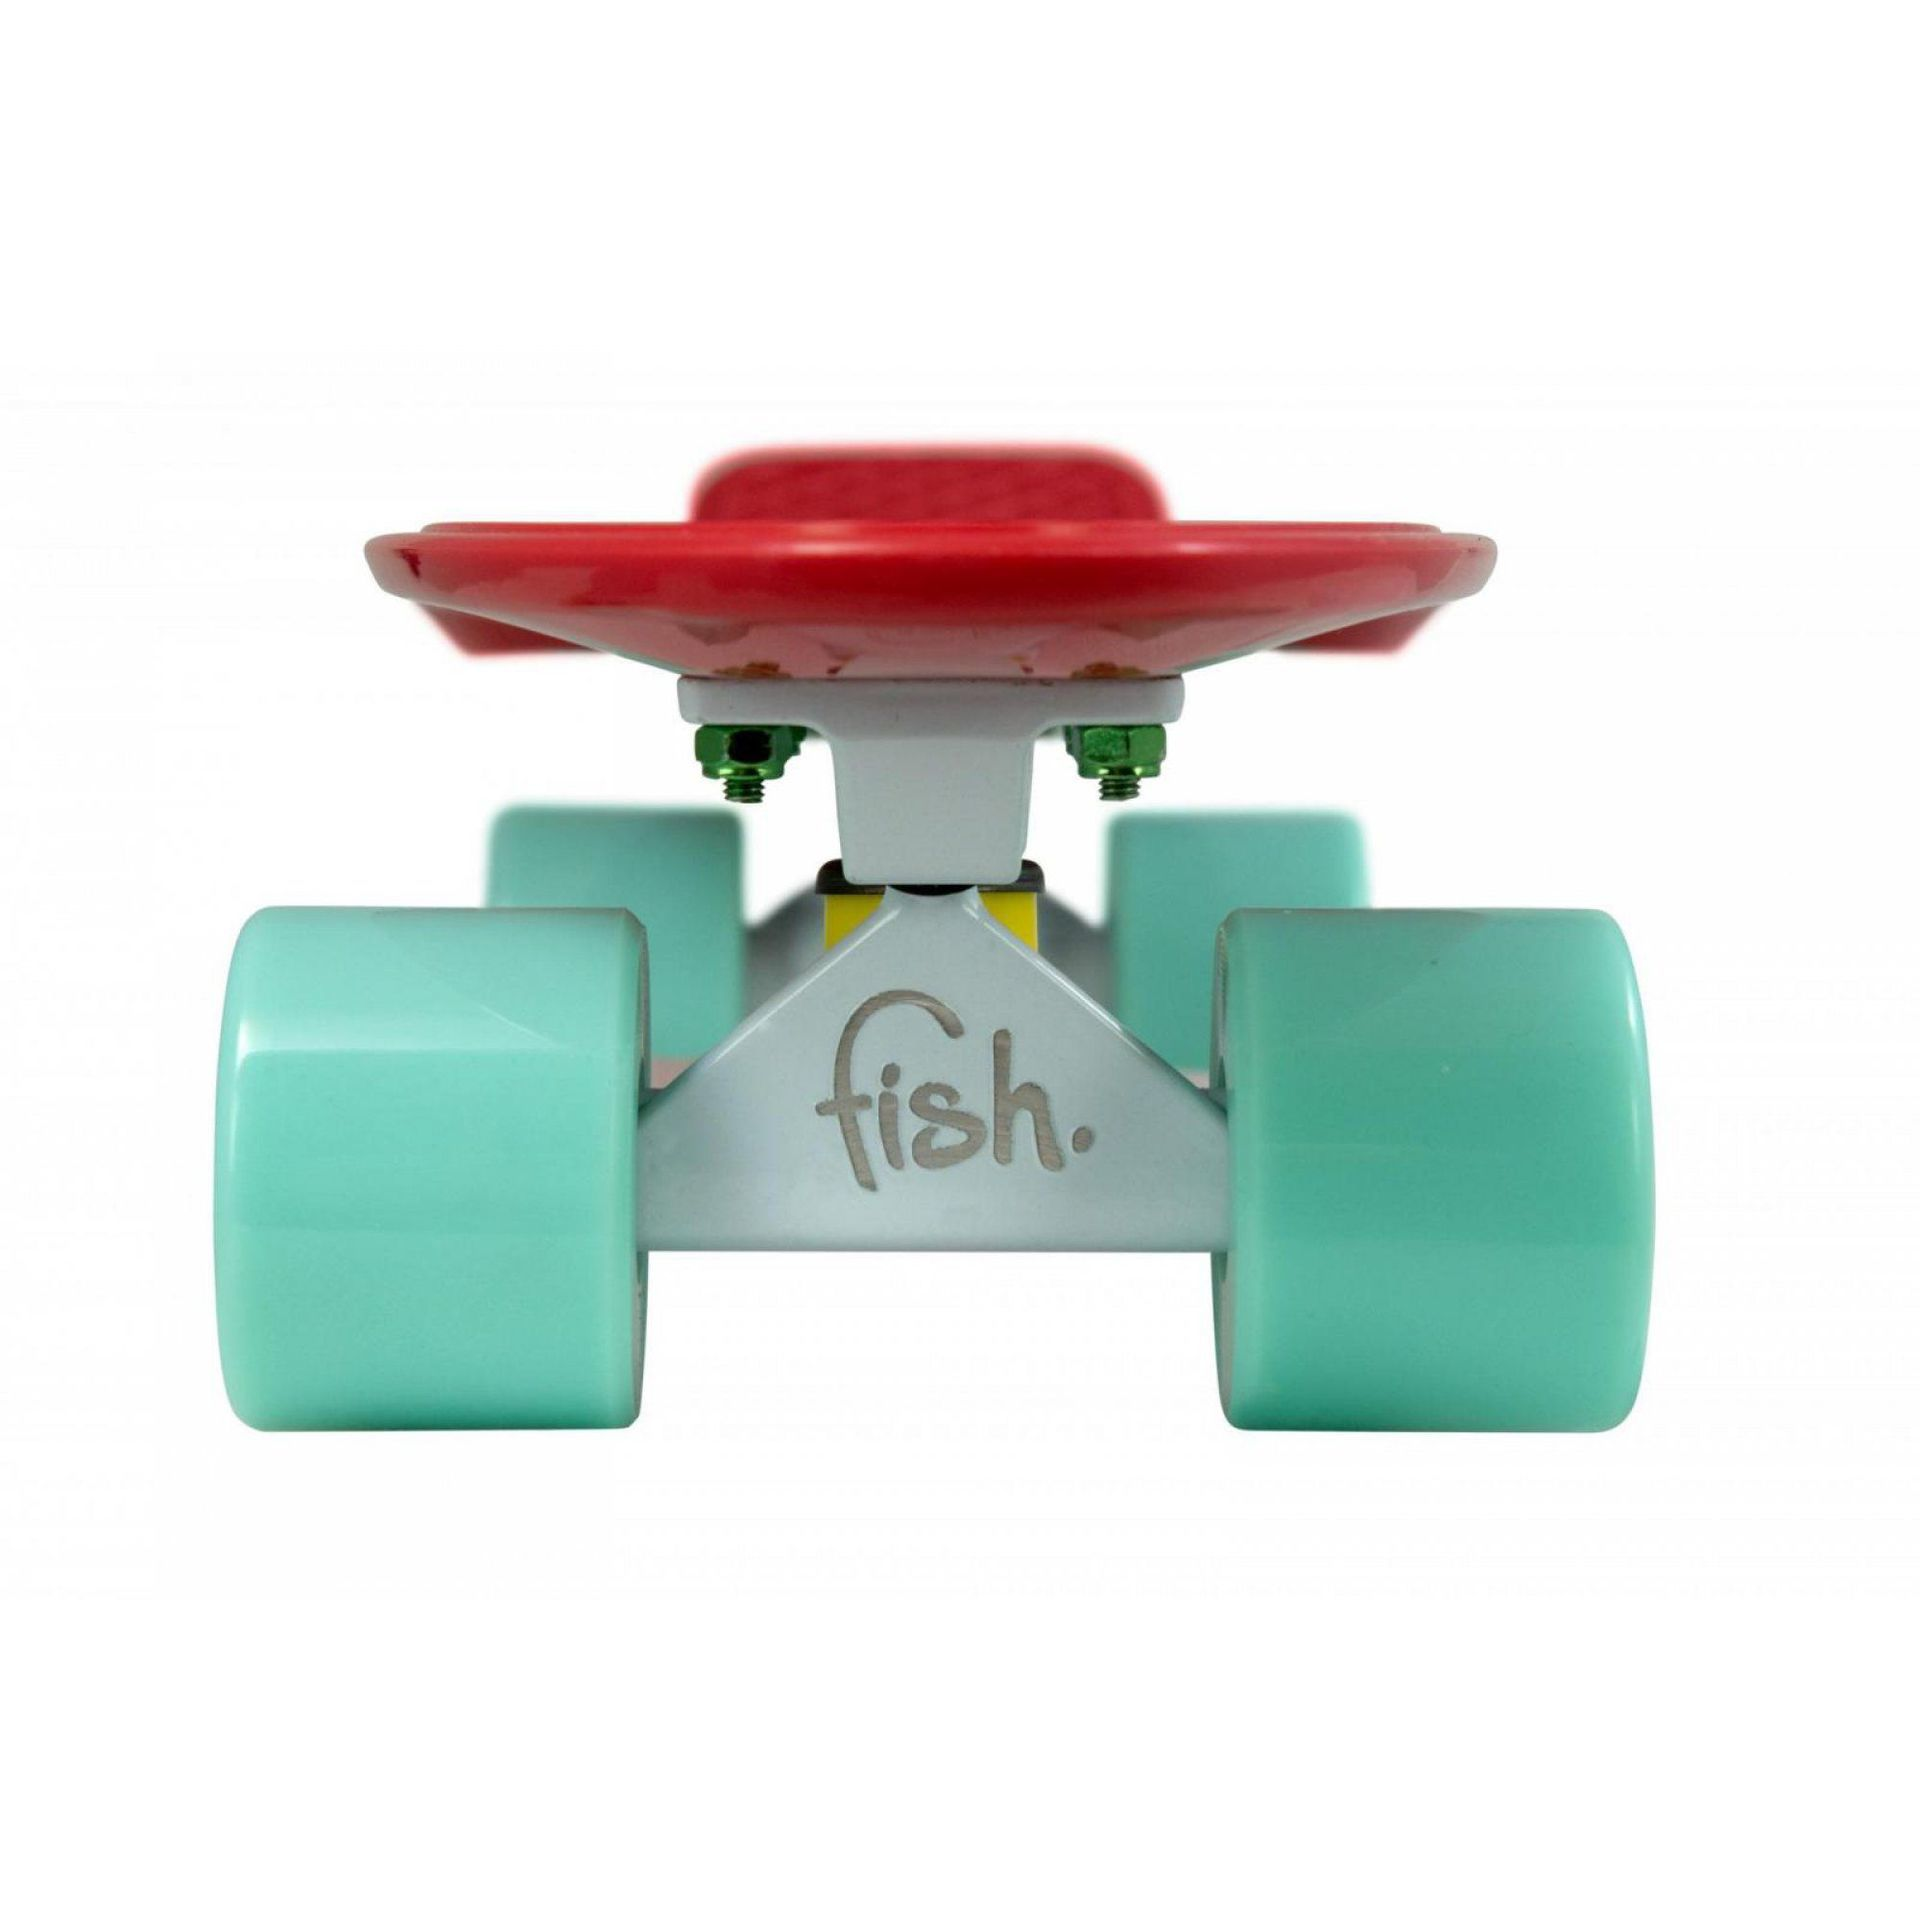 FISHBOARD FISH SKATEBOARDS RED|WHITE|SUMMER GREEN 2